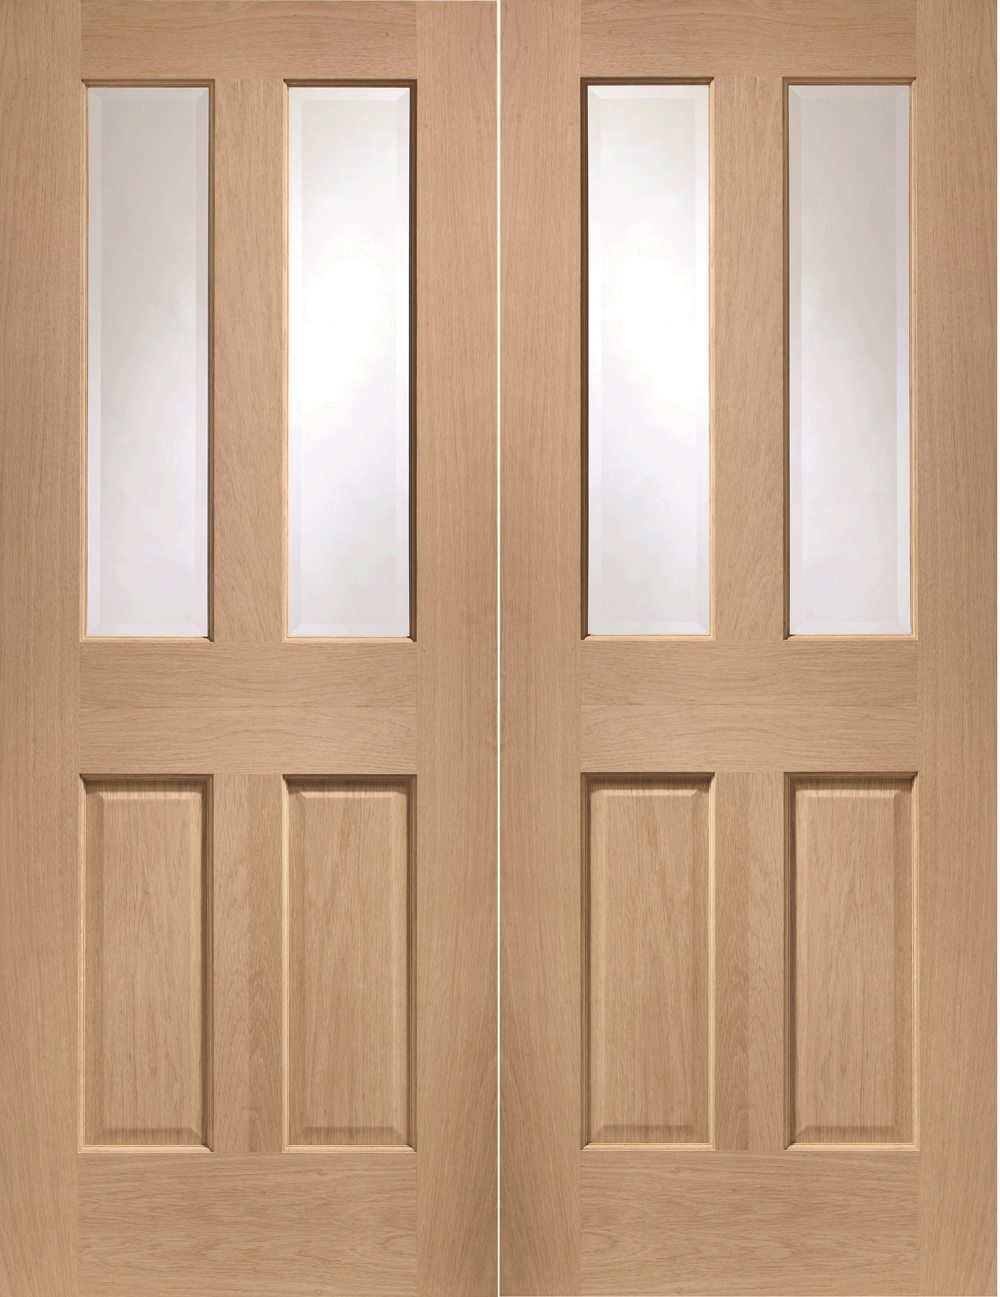 Malton Oak Rebated Door Pair with Clear Bevelled Glass & Malton Unfinished Oak Rebated Internal French Doors with Bevelled Glass